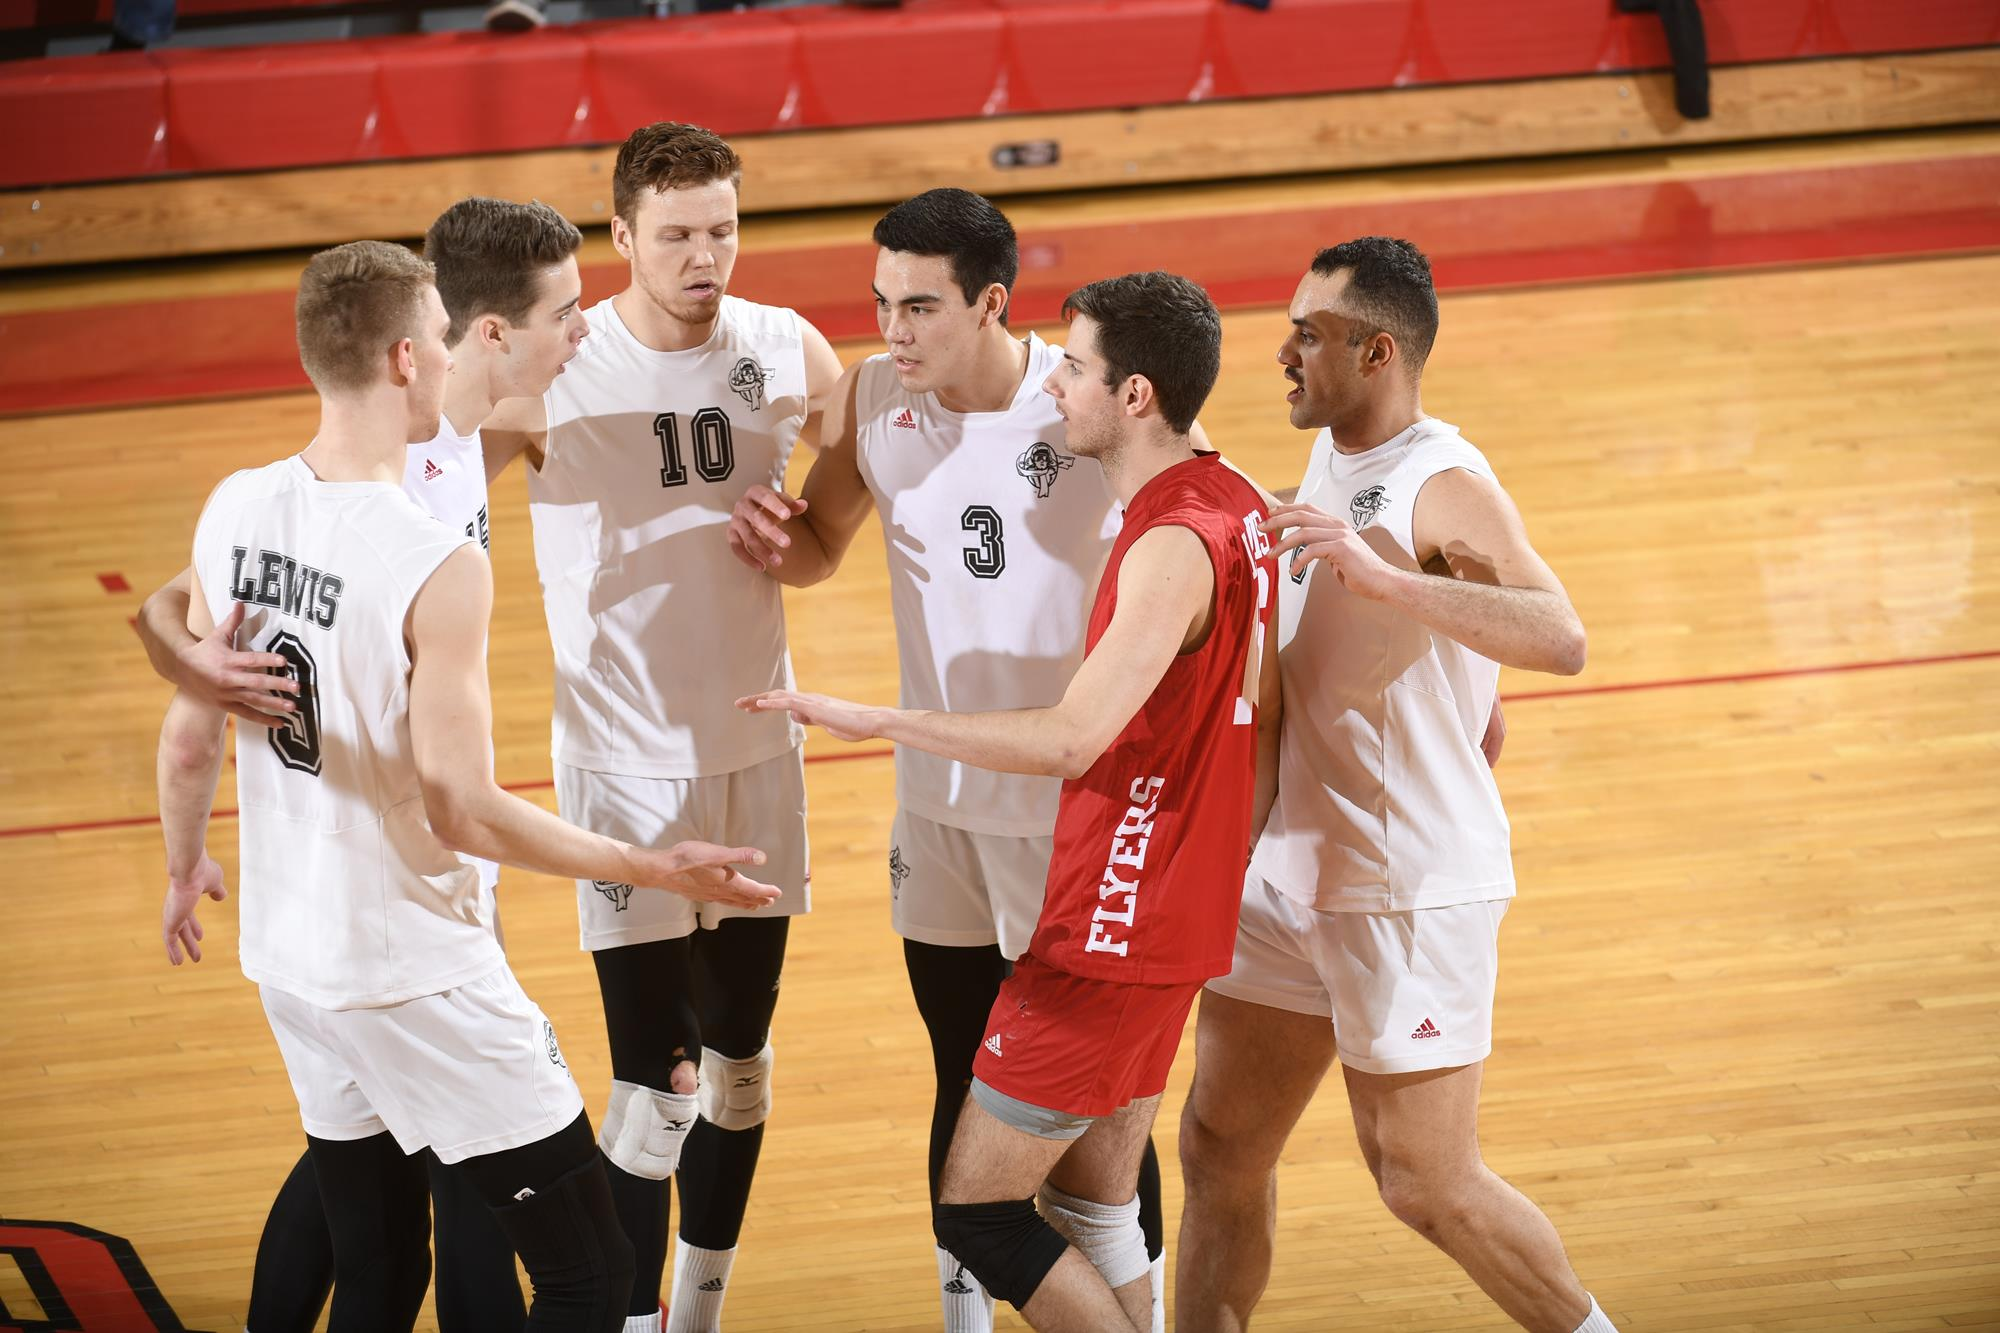 No 6 Lewis Men S Volleyball Squares Off With No 4 Usc In Ncaa Opening Round Match Lewis University Athletics